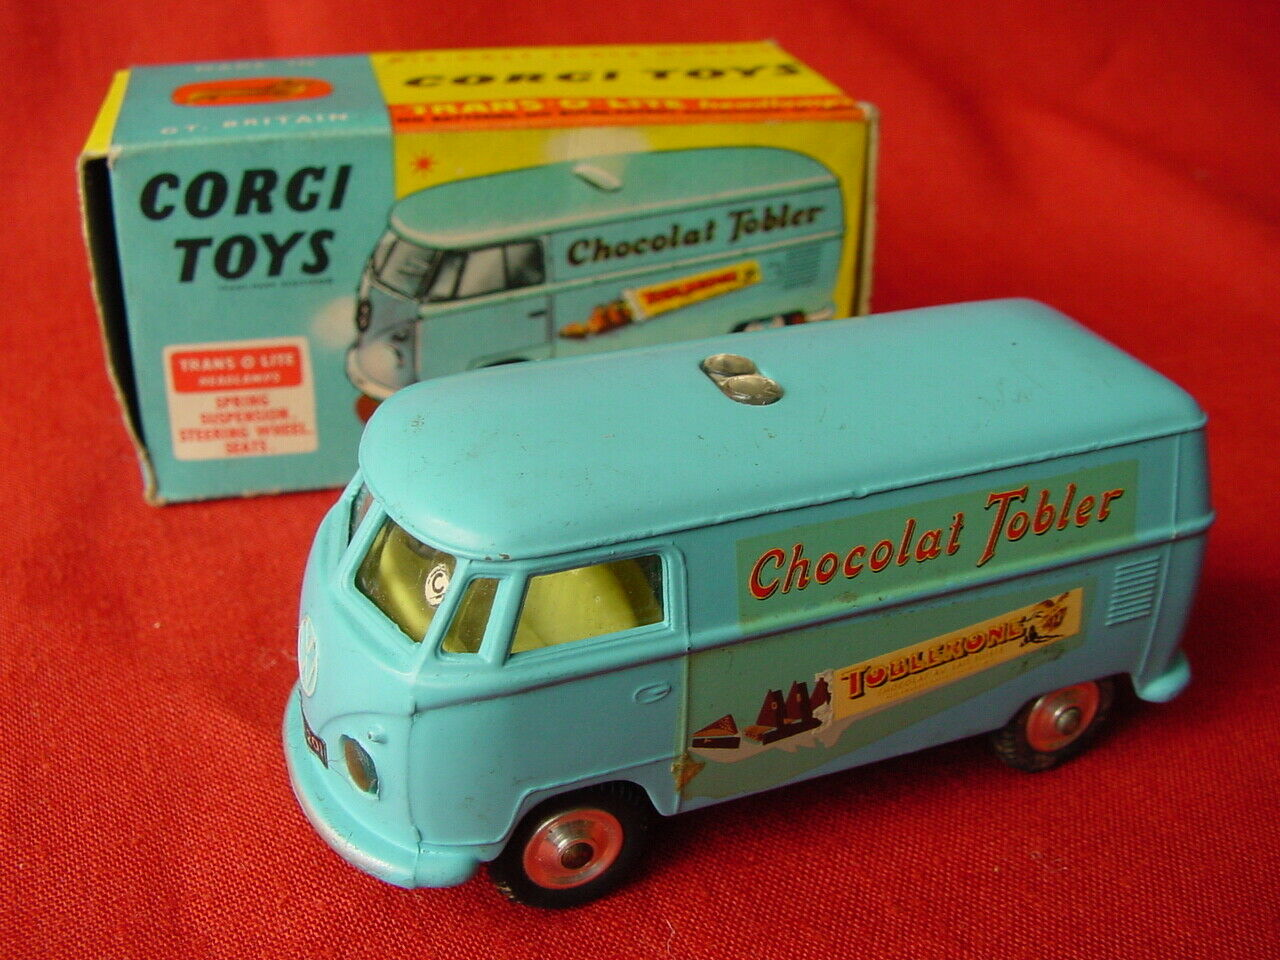 CORGI 441 VOLKWAGEN TOBLERONE VAN - 100% ORIGINAL 1963 (see my other items)